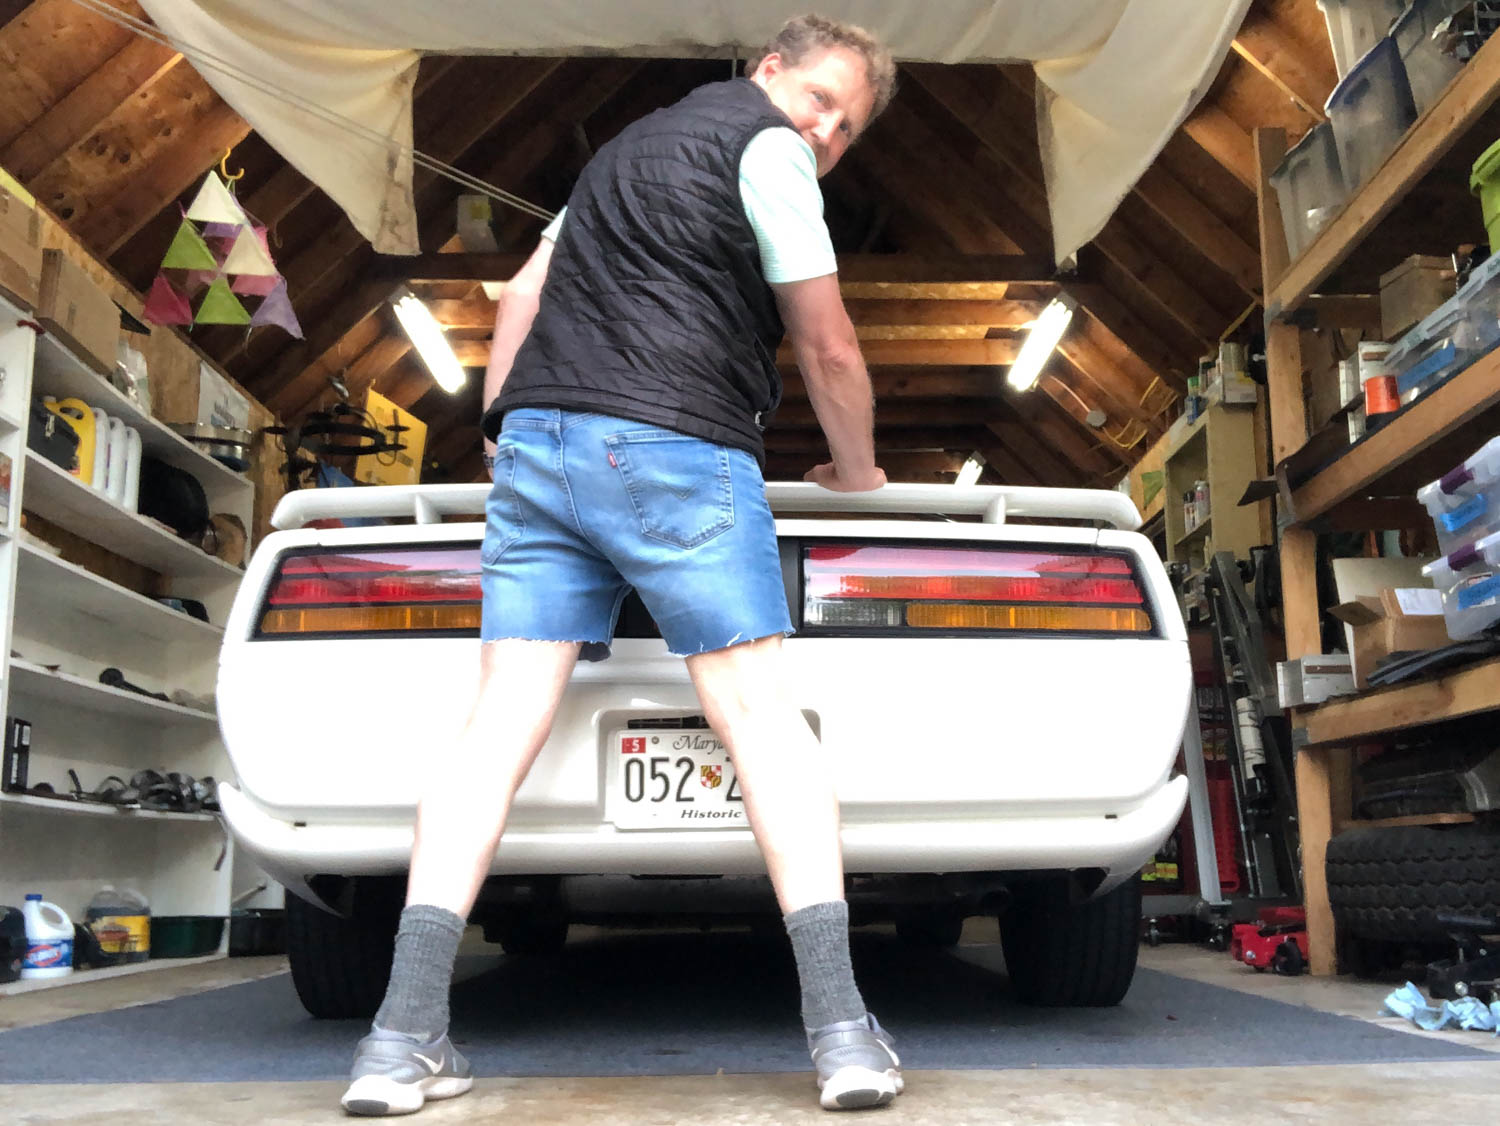 Our man Brad Phillips shows his best angle in a pair of jorts, an image that, once you've seen it, can't really be unseen. Sorry.